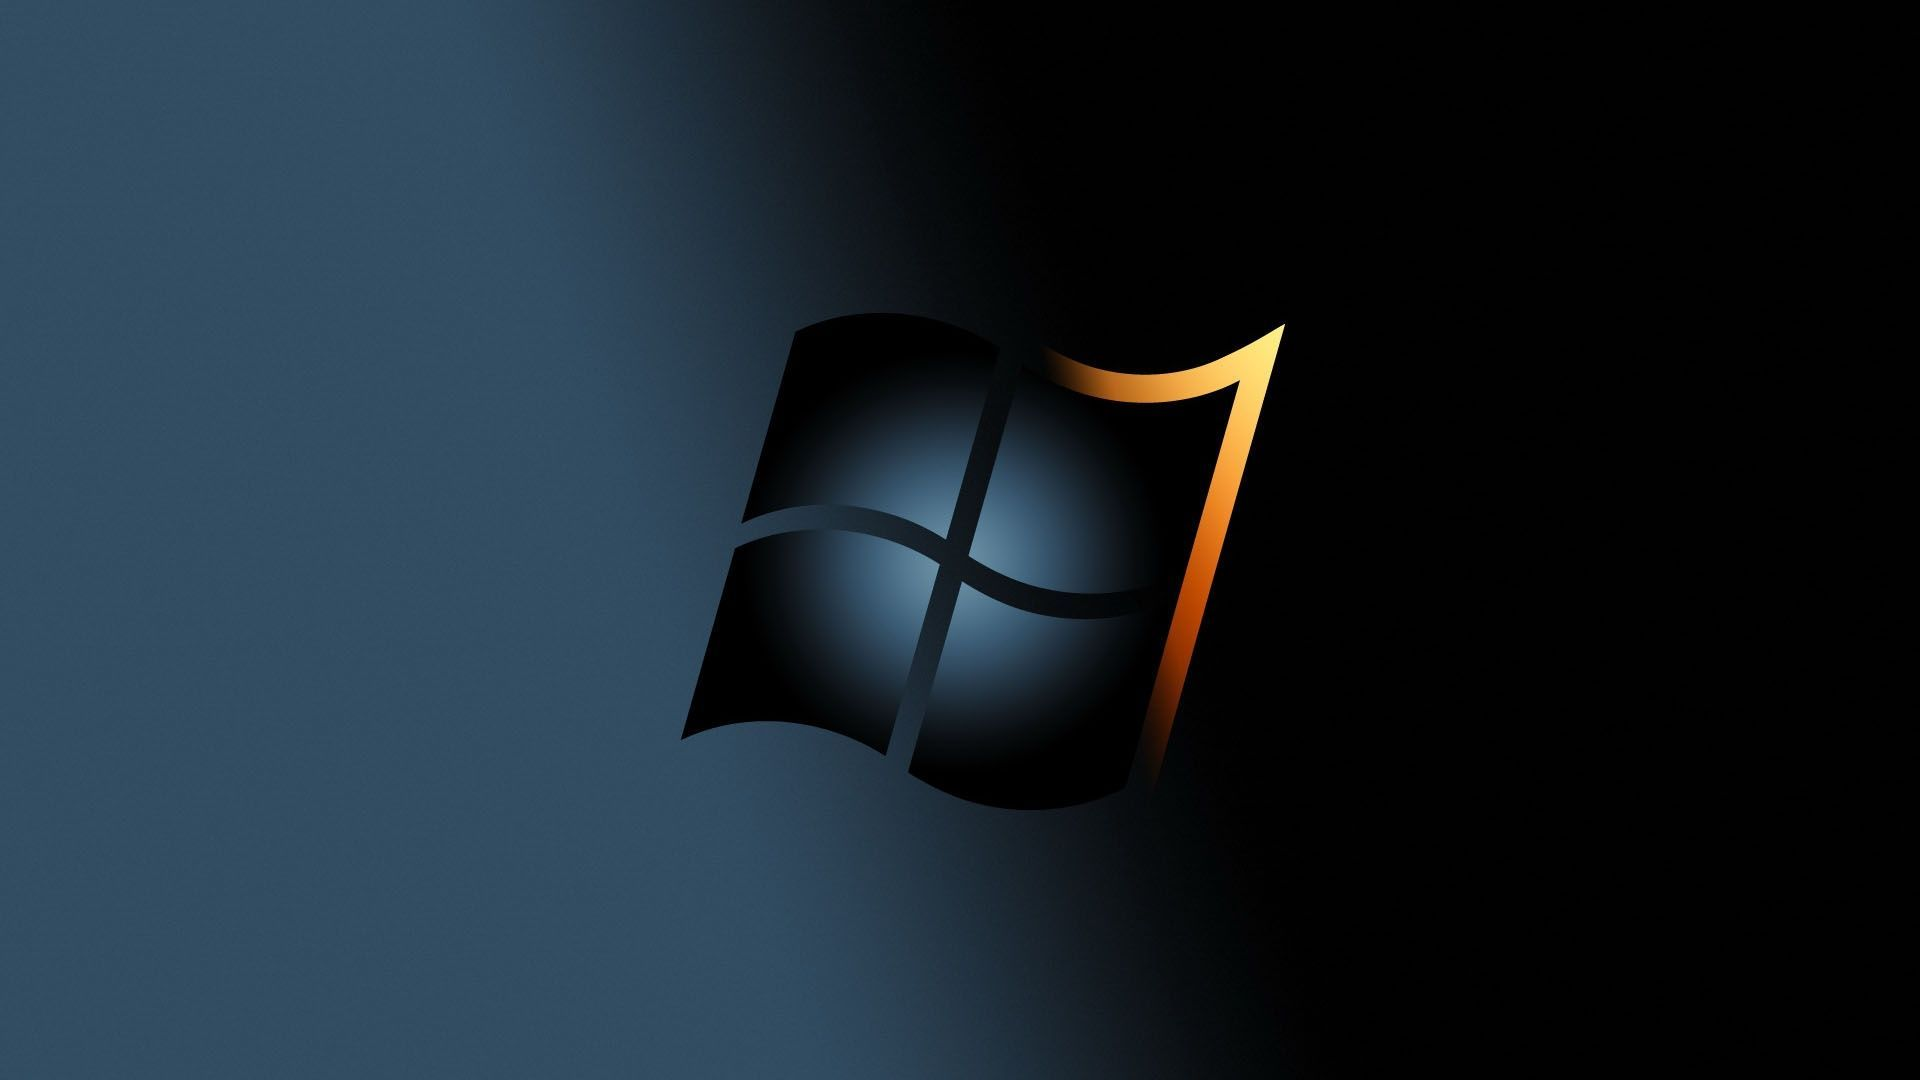 30 windows 8 hd wallpaper and backgrounds 45 cool wallpaper and backgrounds for desktop pinterest hd wallpaper wallpaper and user interface